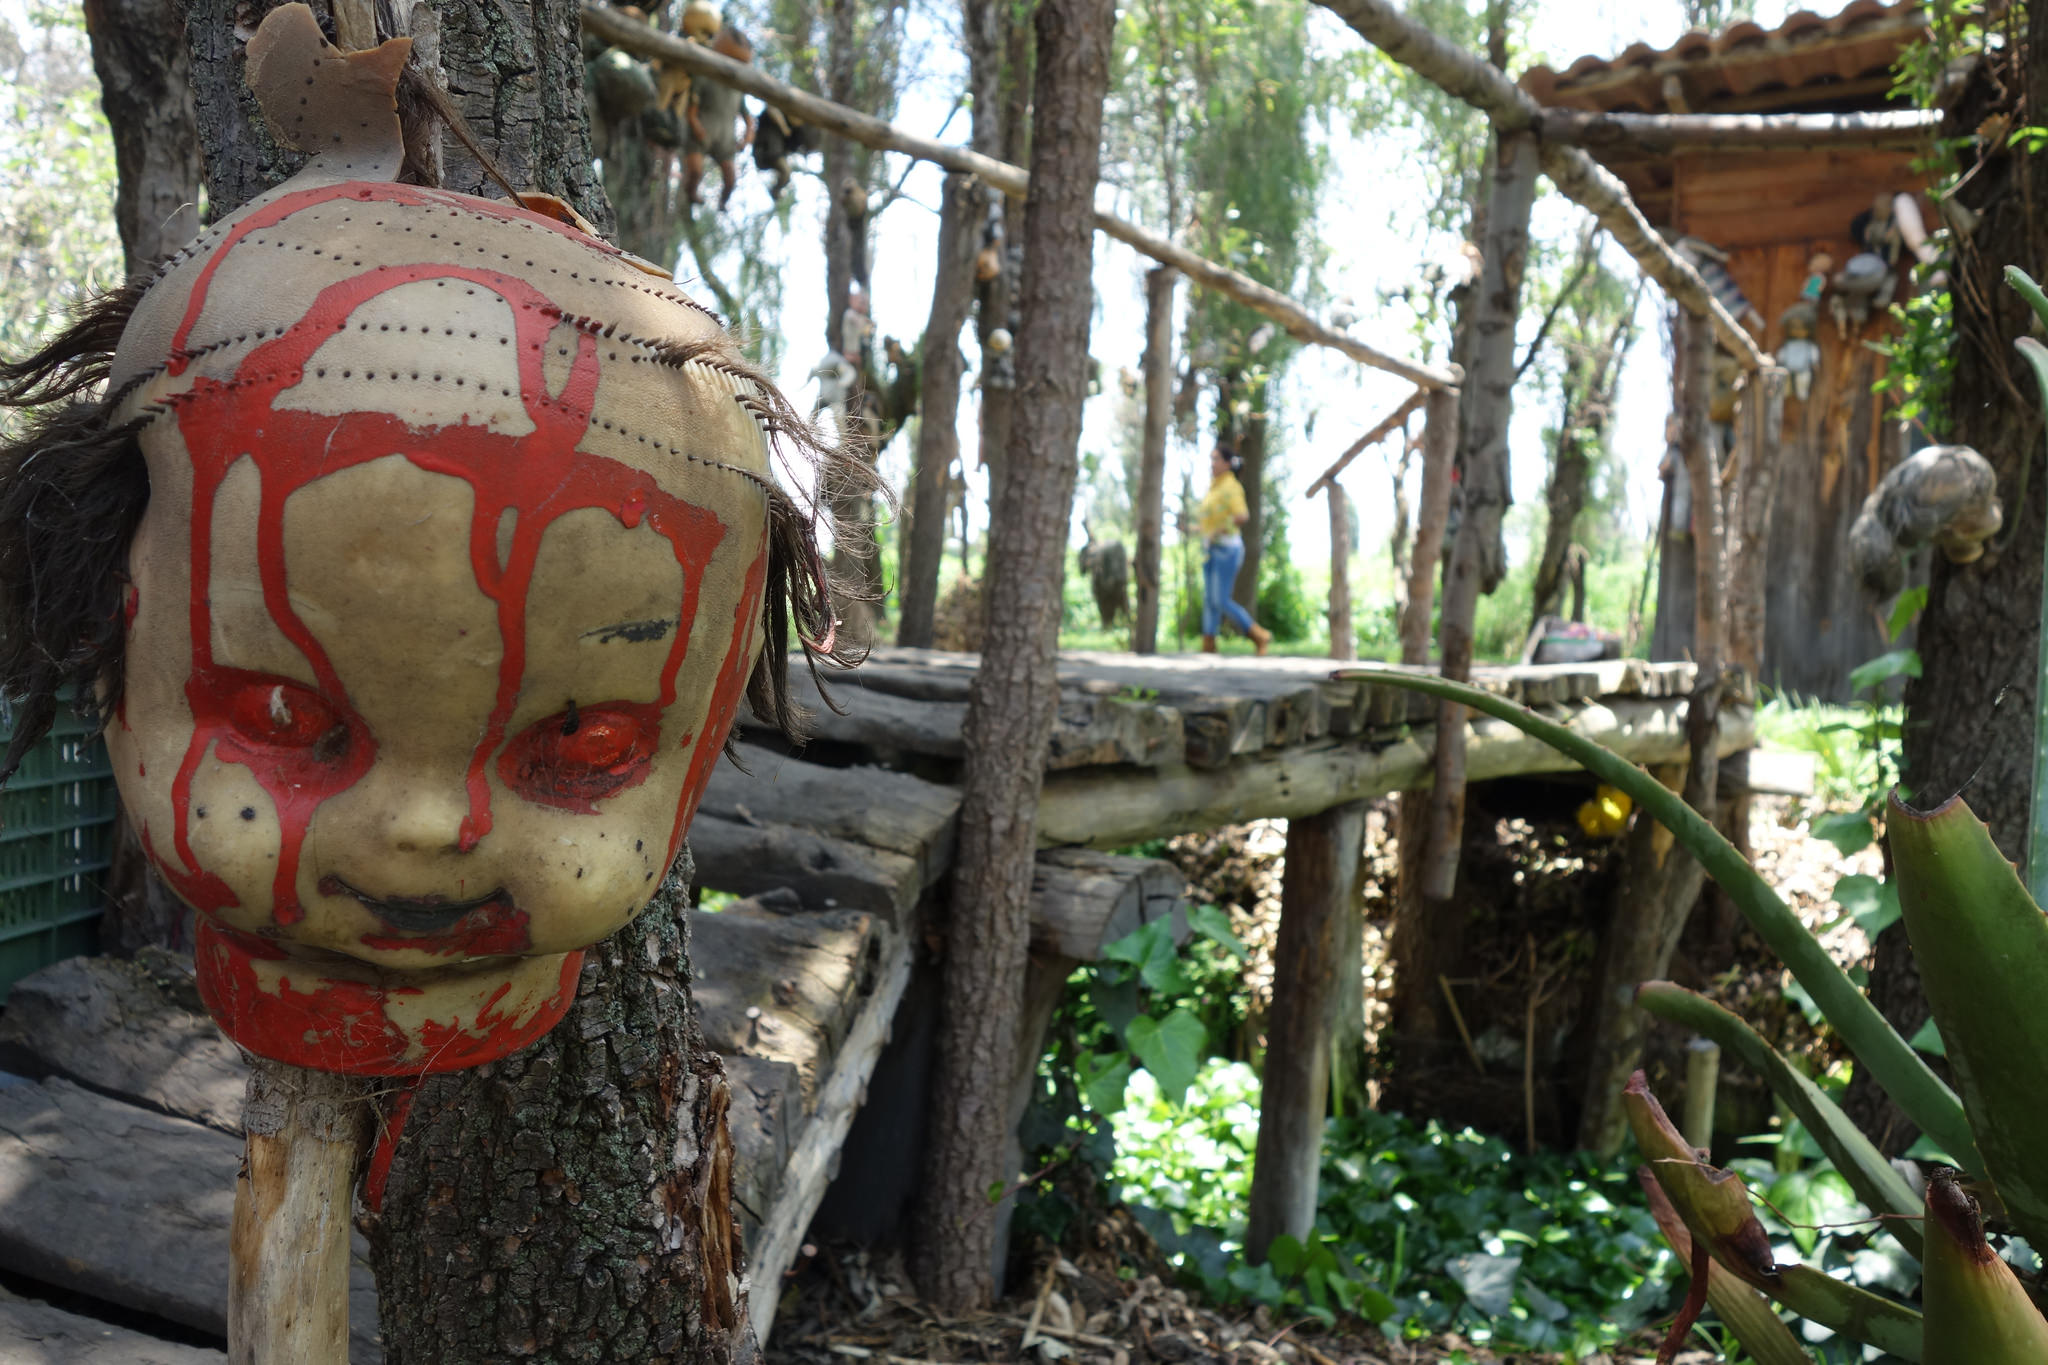 Isla de las Munecas (Island of the Dolls), Mexico City, Mexico